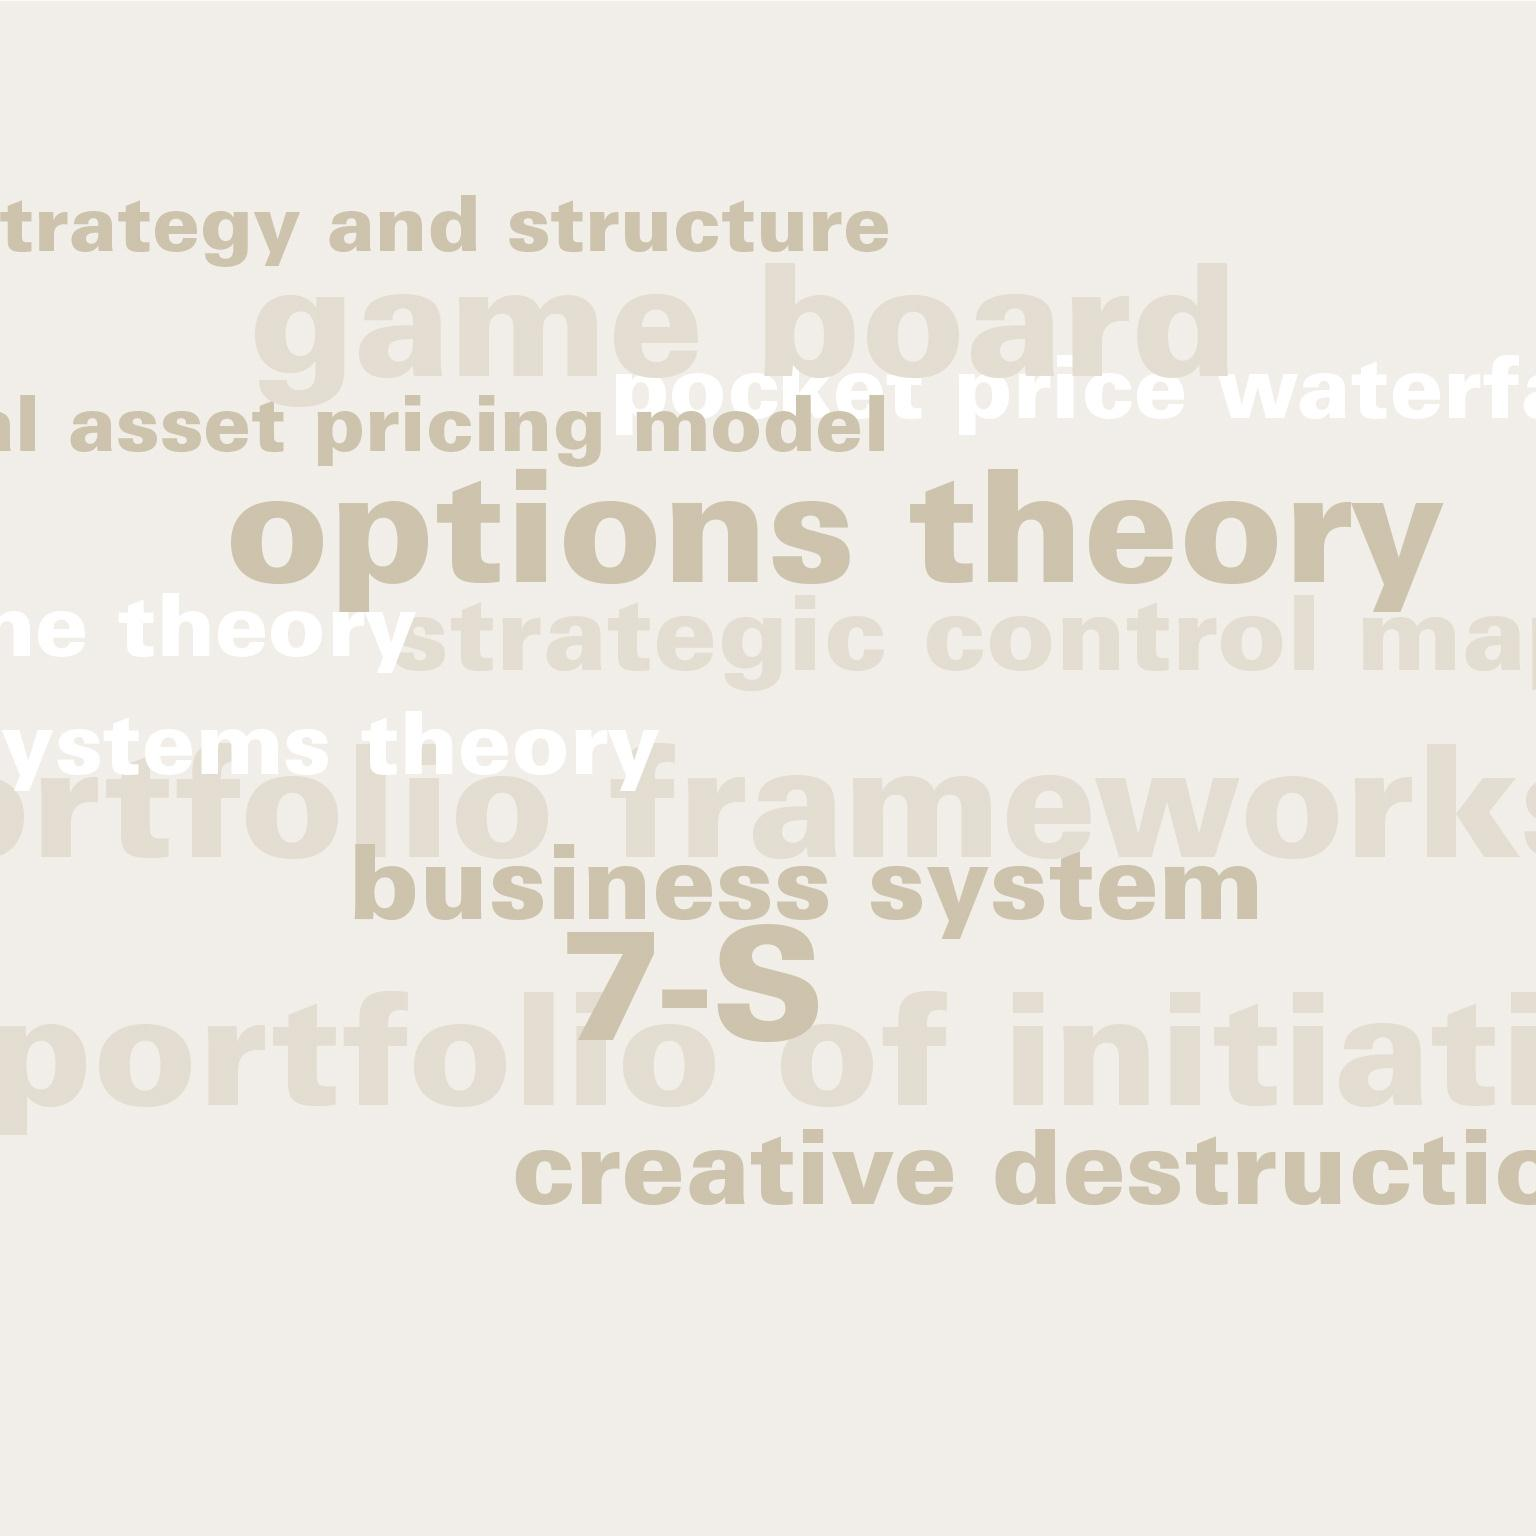 Enduring Ideas: Classic McKinsey frameworks that continue to inform management thinking